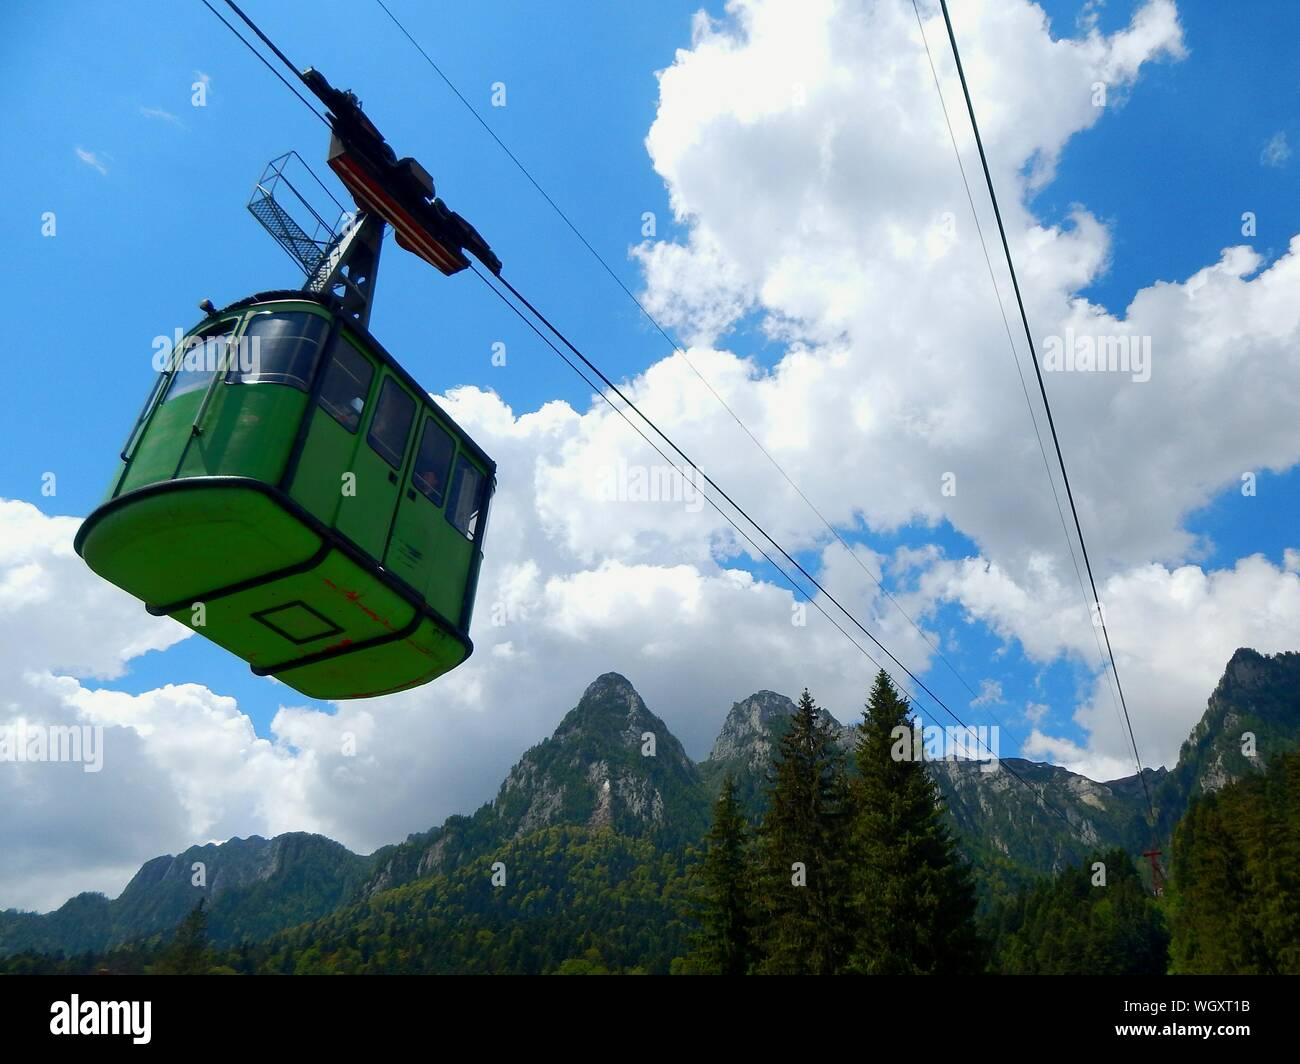 Low Angle View Of Ski Lift By Mountains Against Sky Stock Photo